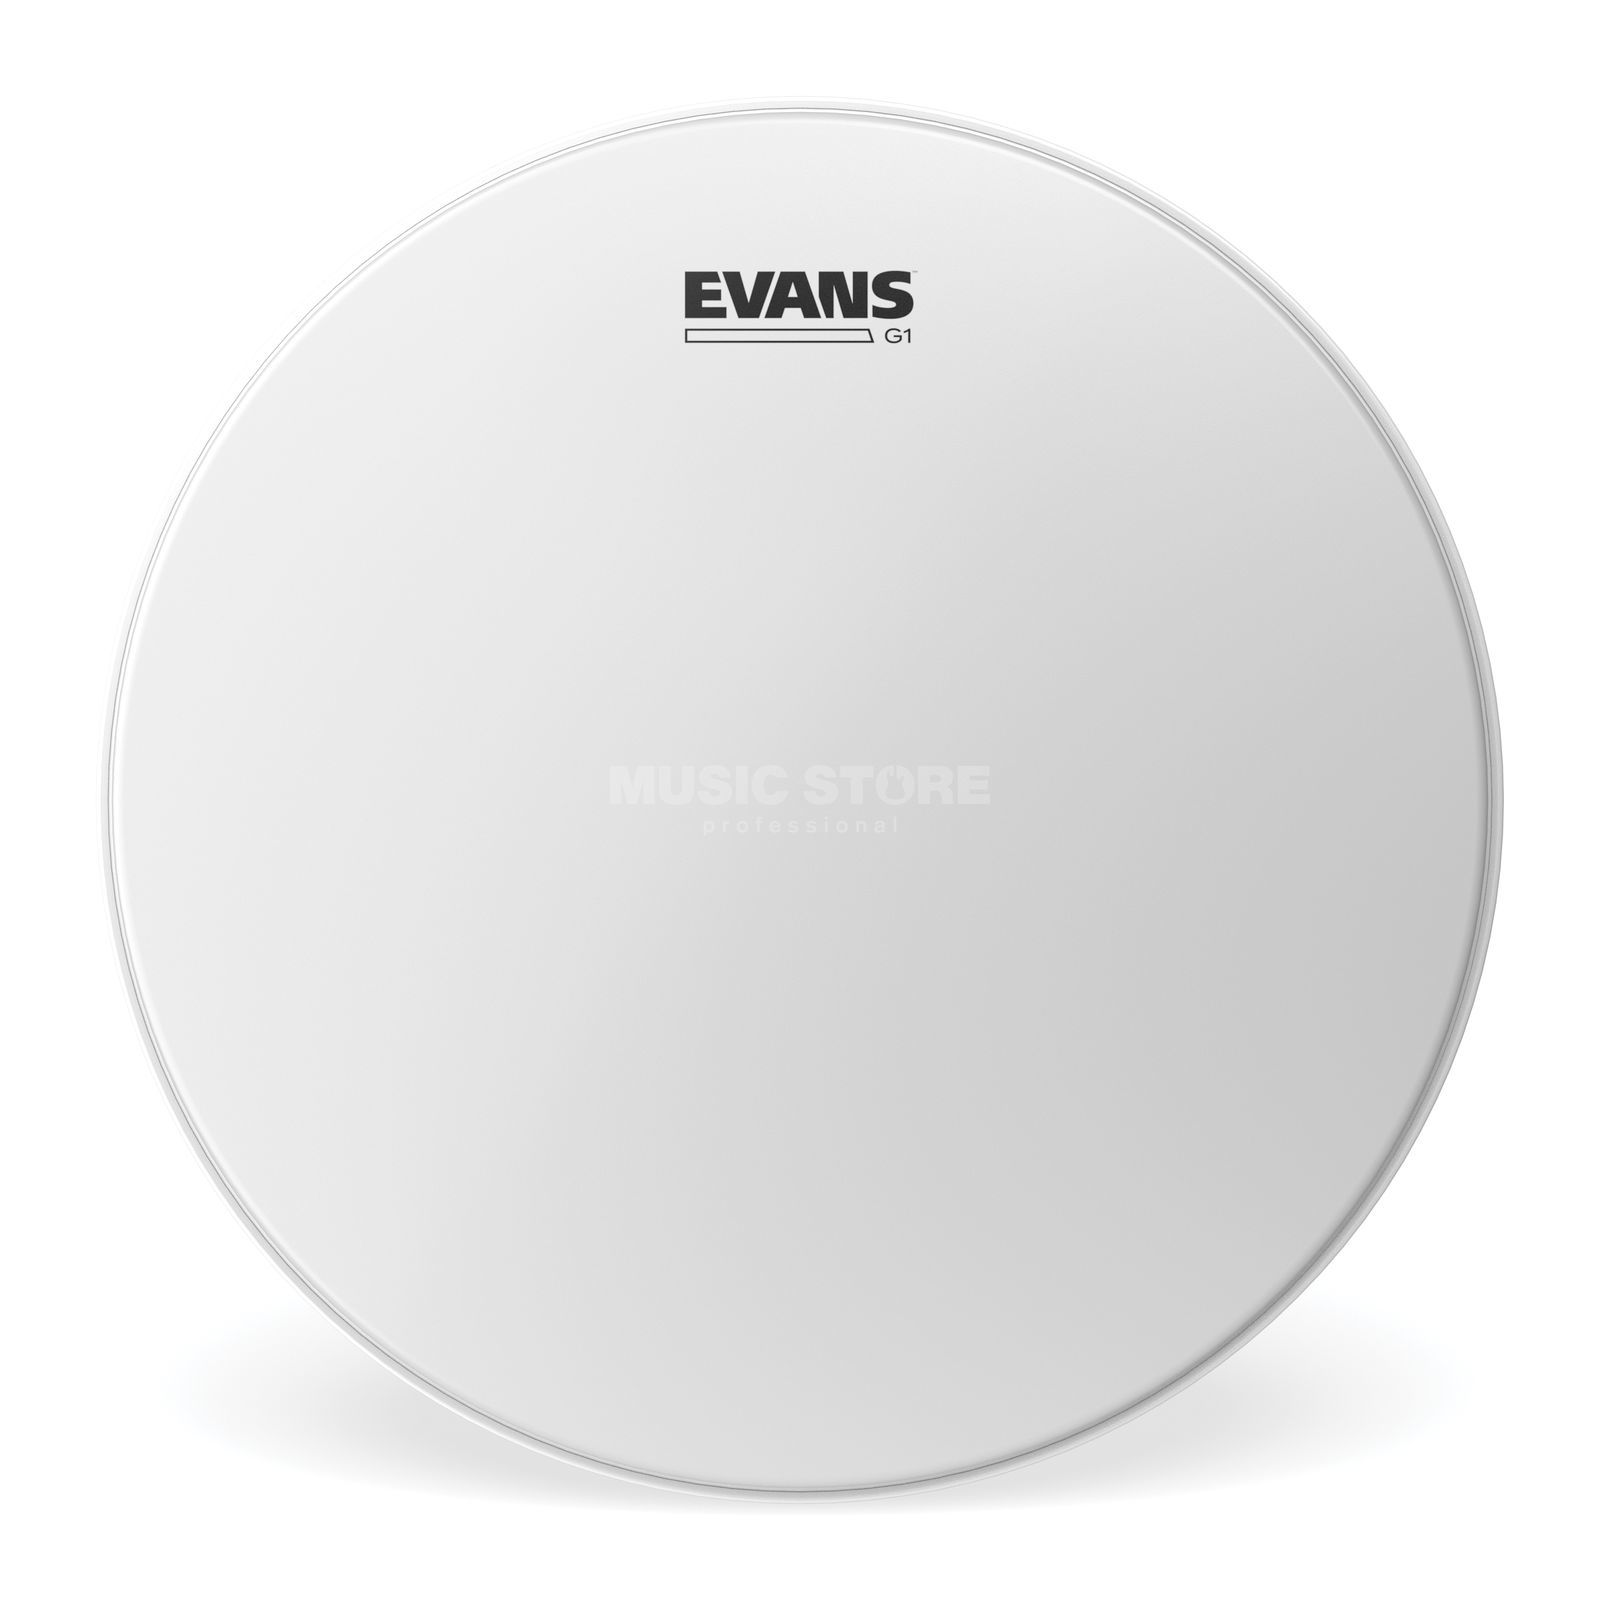 "Evans G1 Coated 12"", B12G1, Tom Batter Изображение товара"